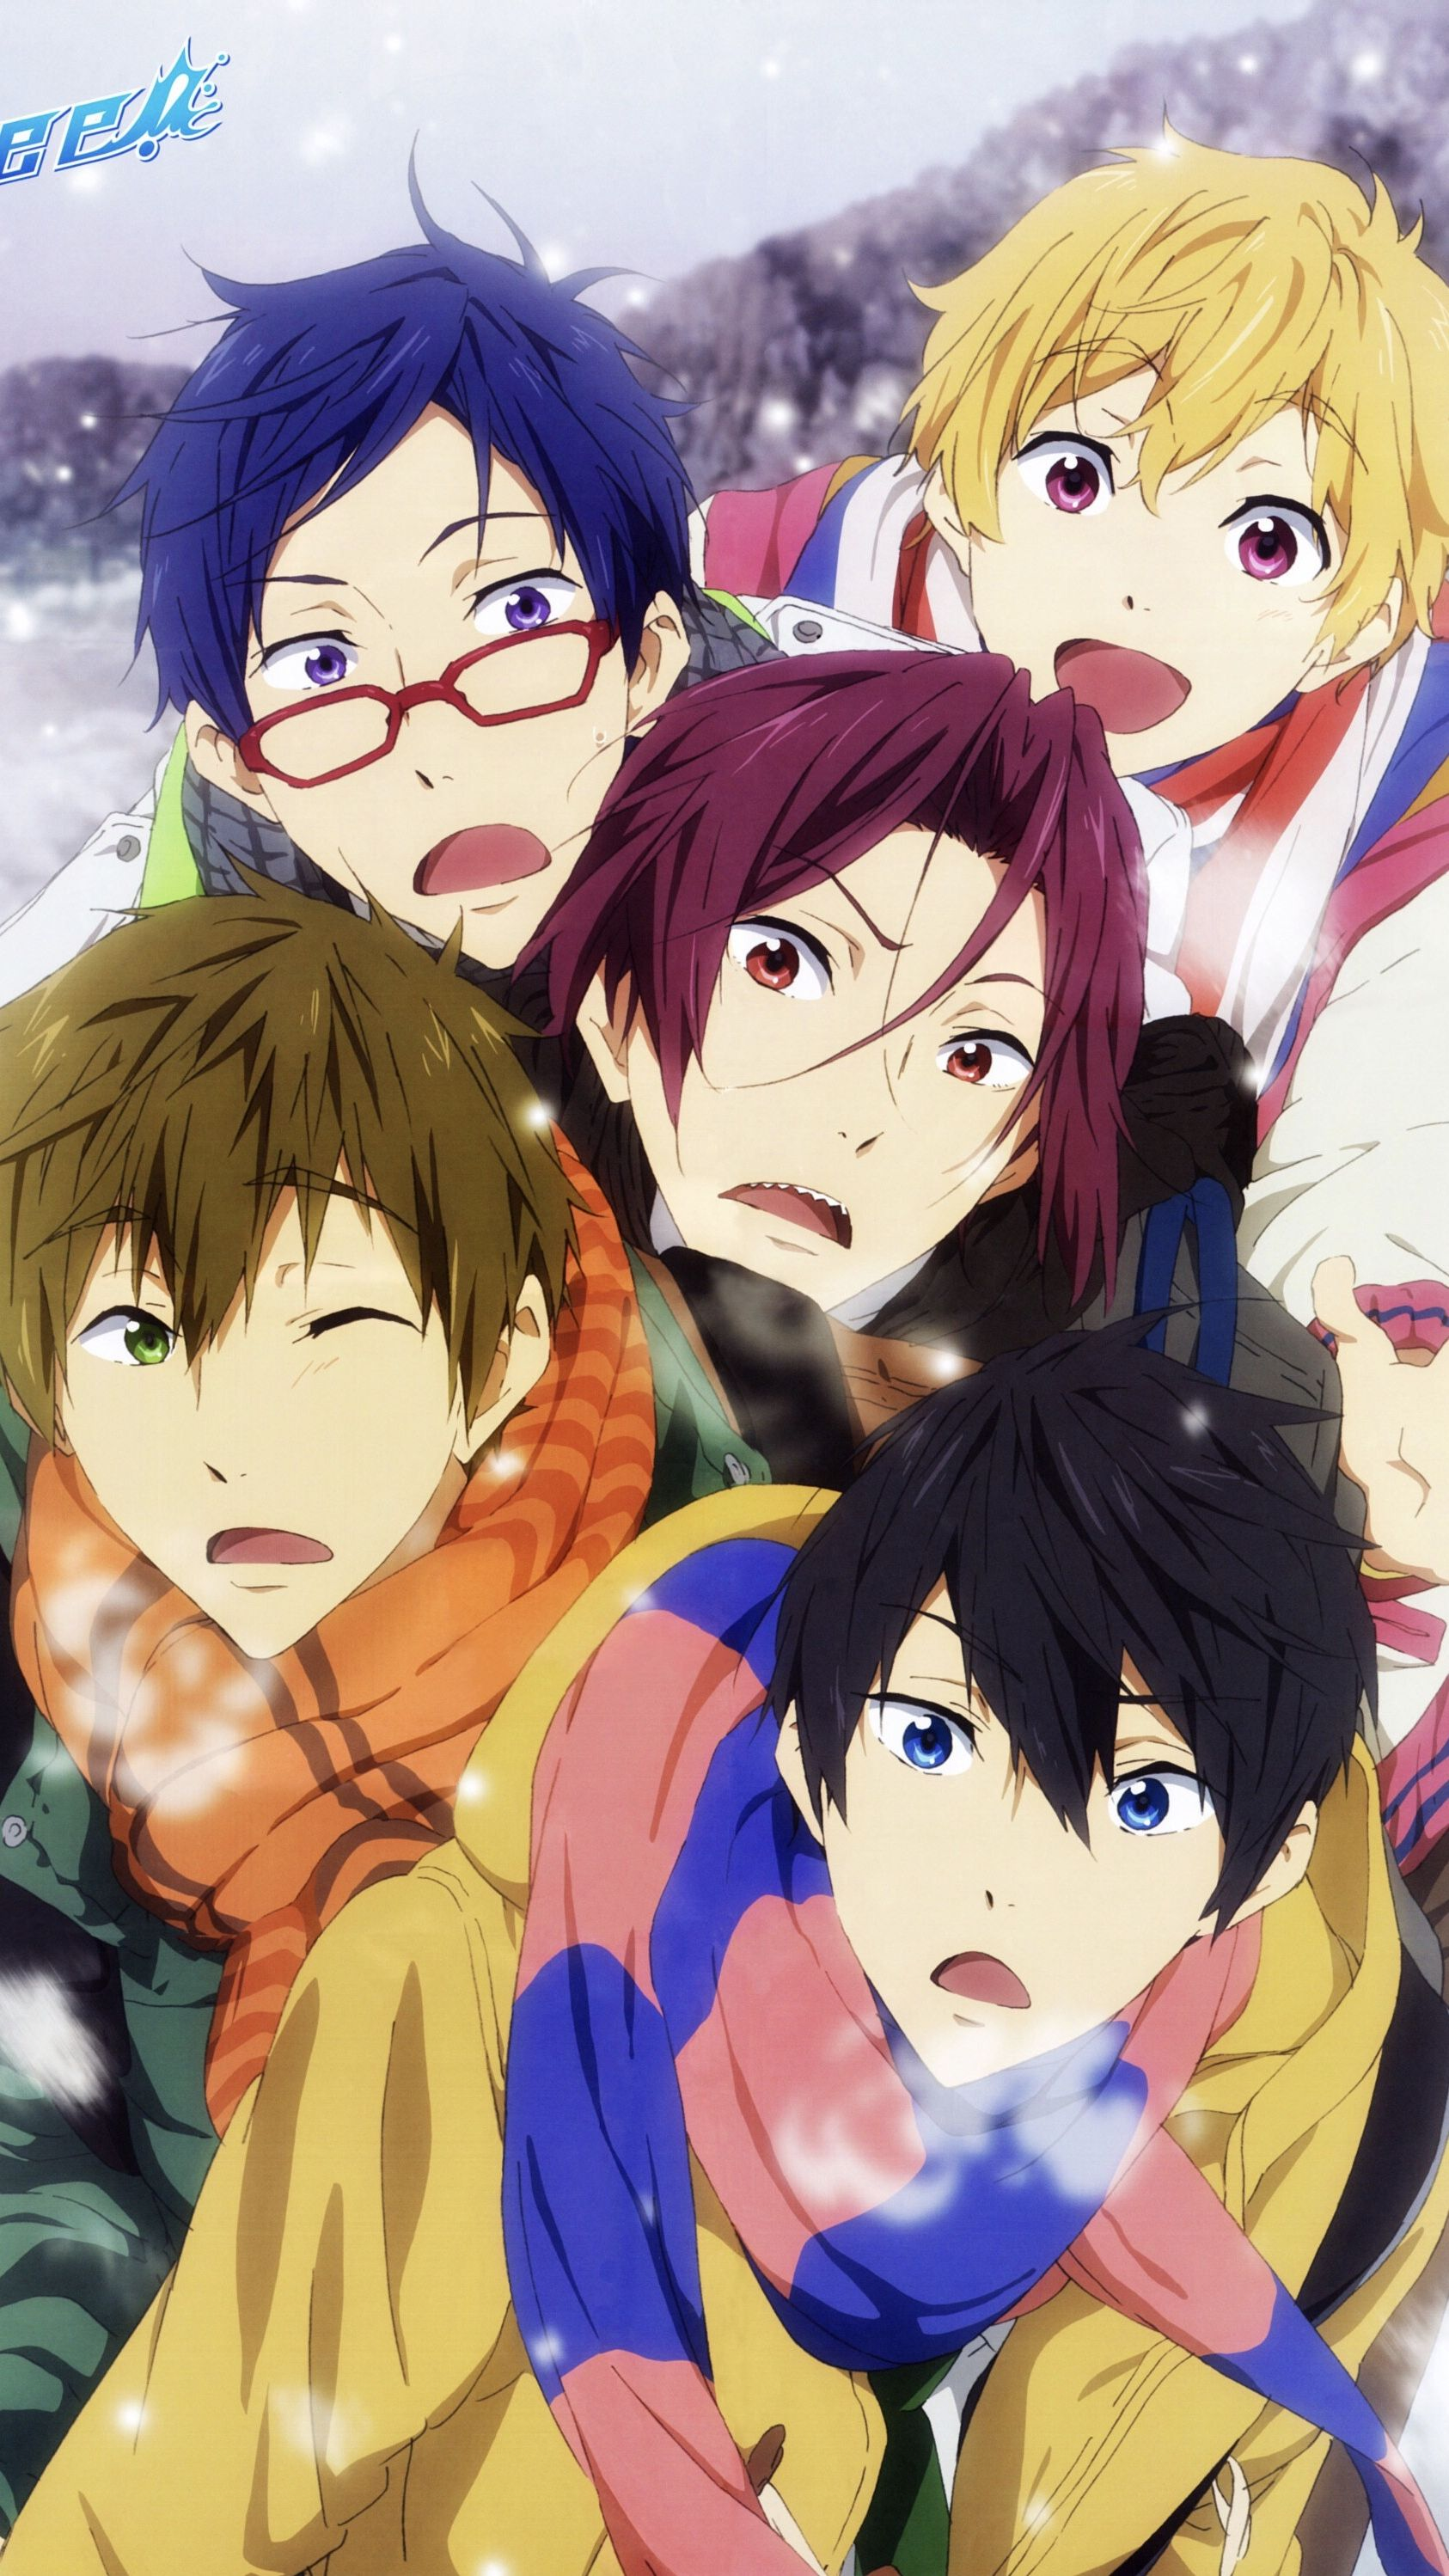 Check The Link In The Bio To Download Hd Wallpapers Of Free And More Pc Phone Anime Free Author Kōji ōju T In 2020 Free Anime Anime Iwatobi Swim Club